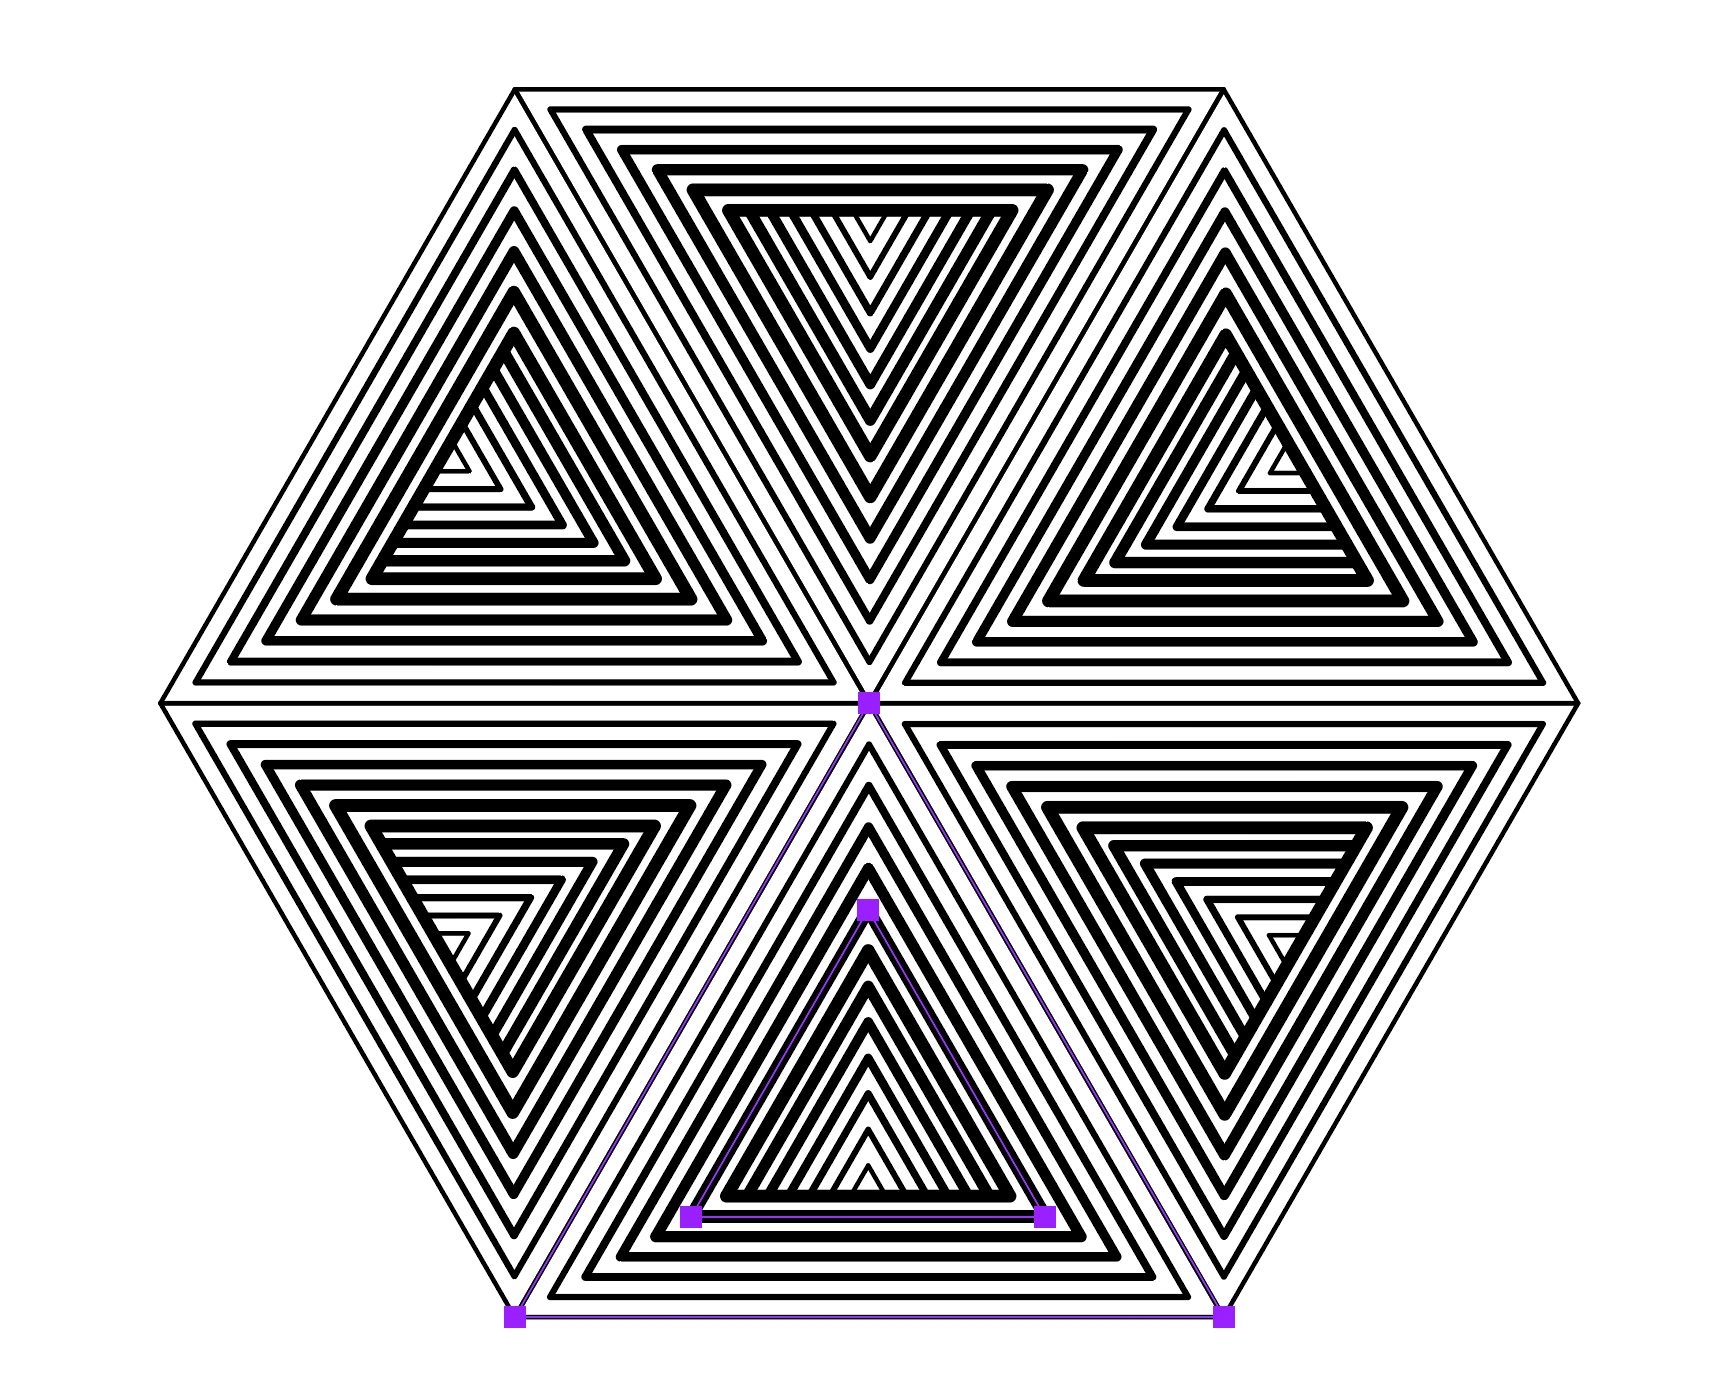 A hexagon made of triangles.